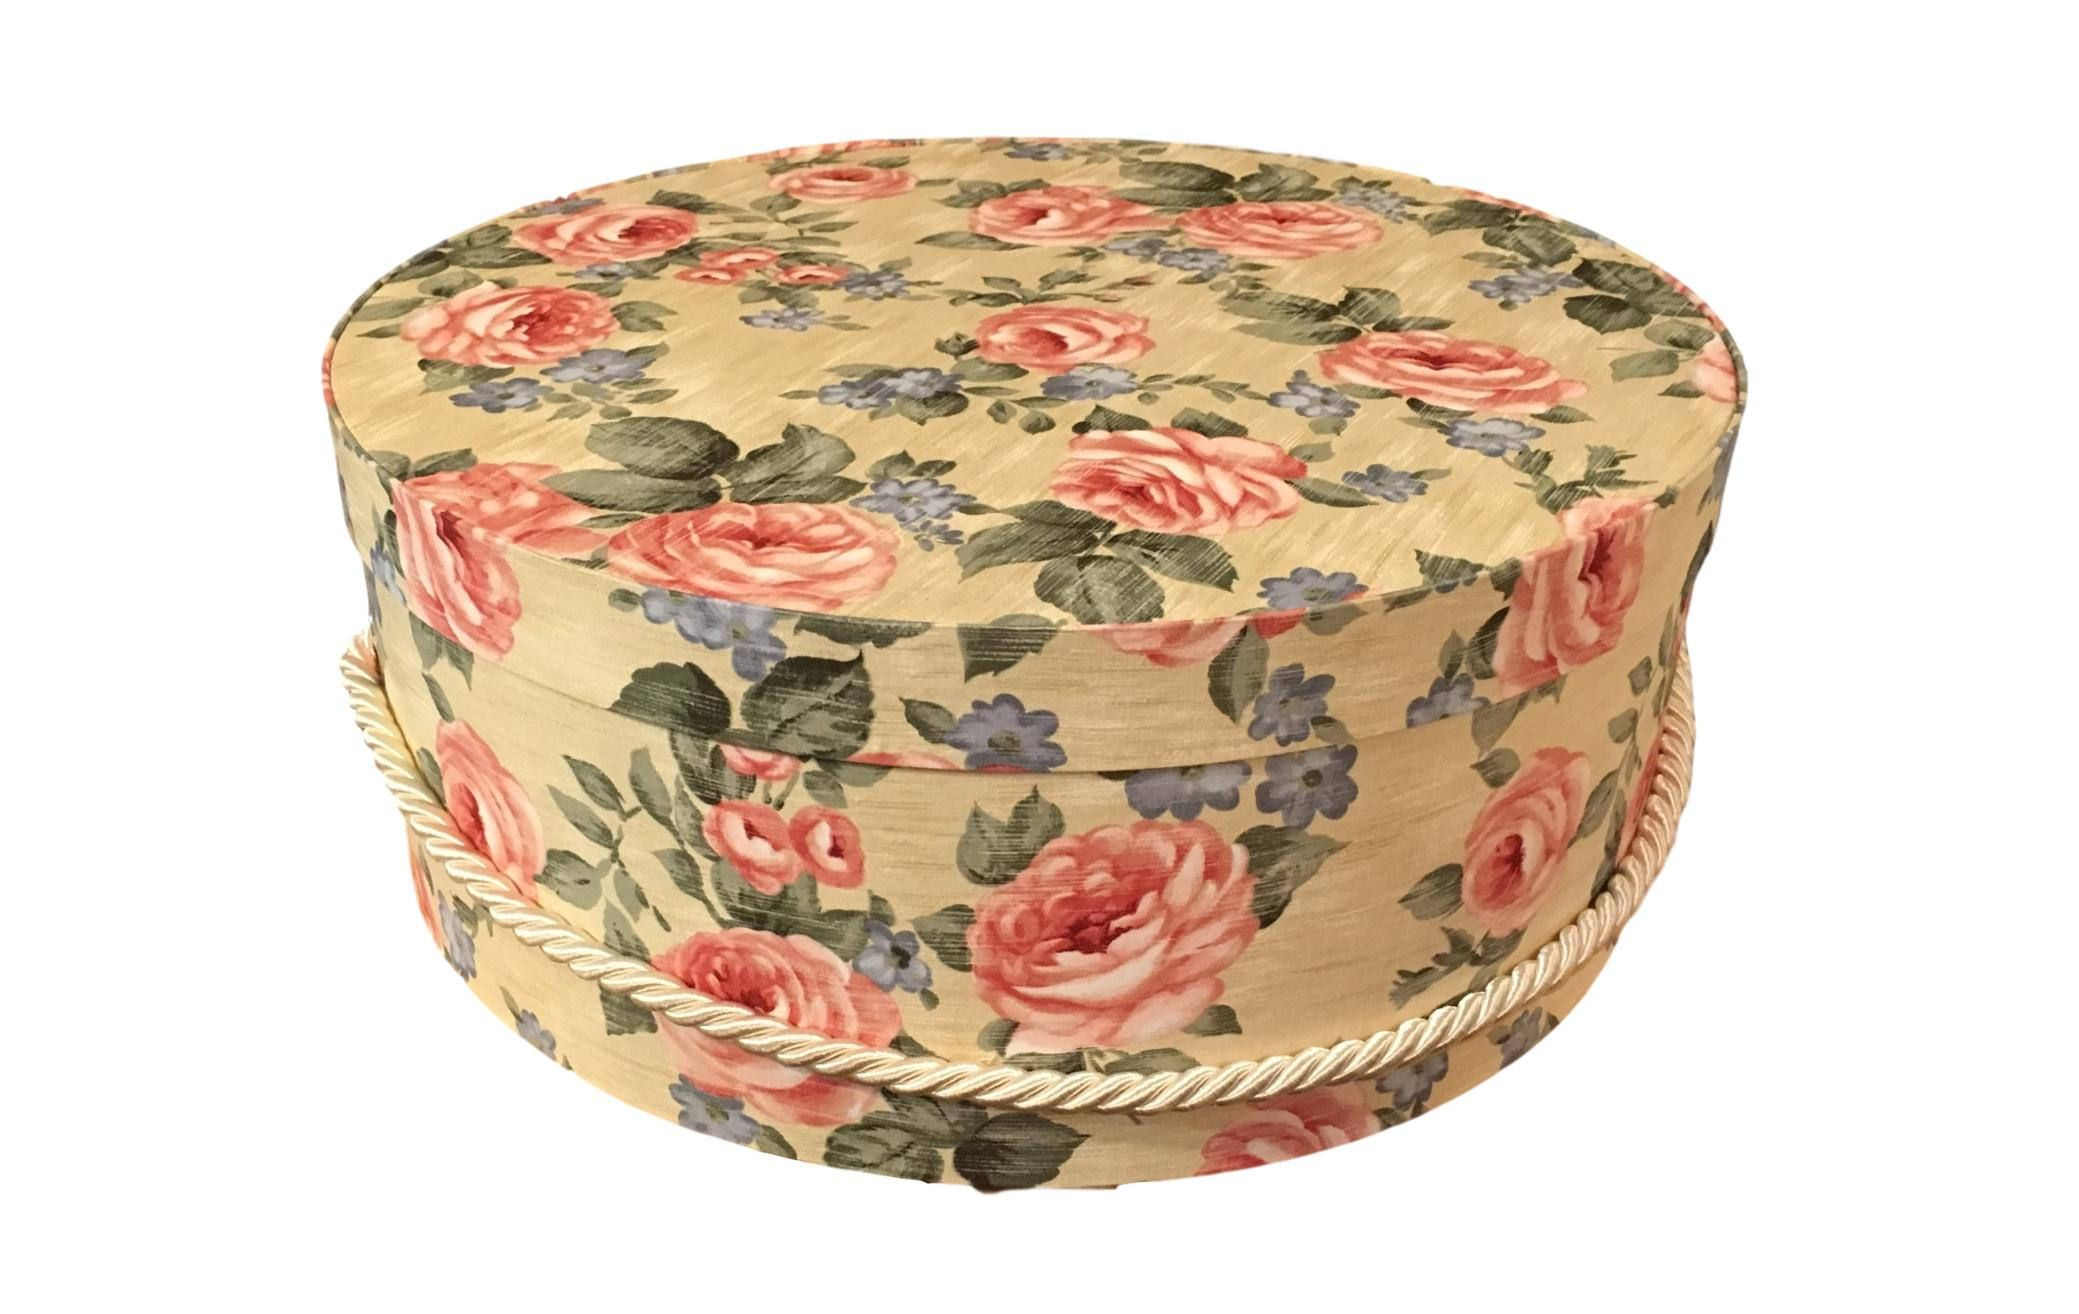 Large Hat Box In Pink Rose Floral Hat Boxes Large Decorative Fabric Covered Boxes Round Storage Box Keepsake Bo Fabric Covered Boxes Hat Boxes Fabric Decor